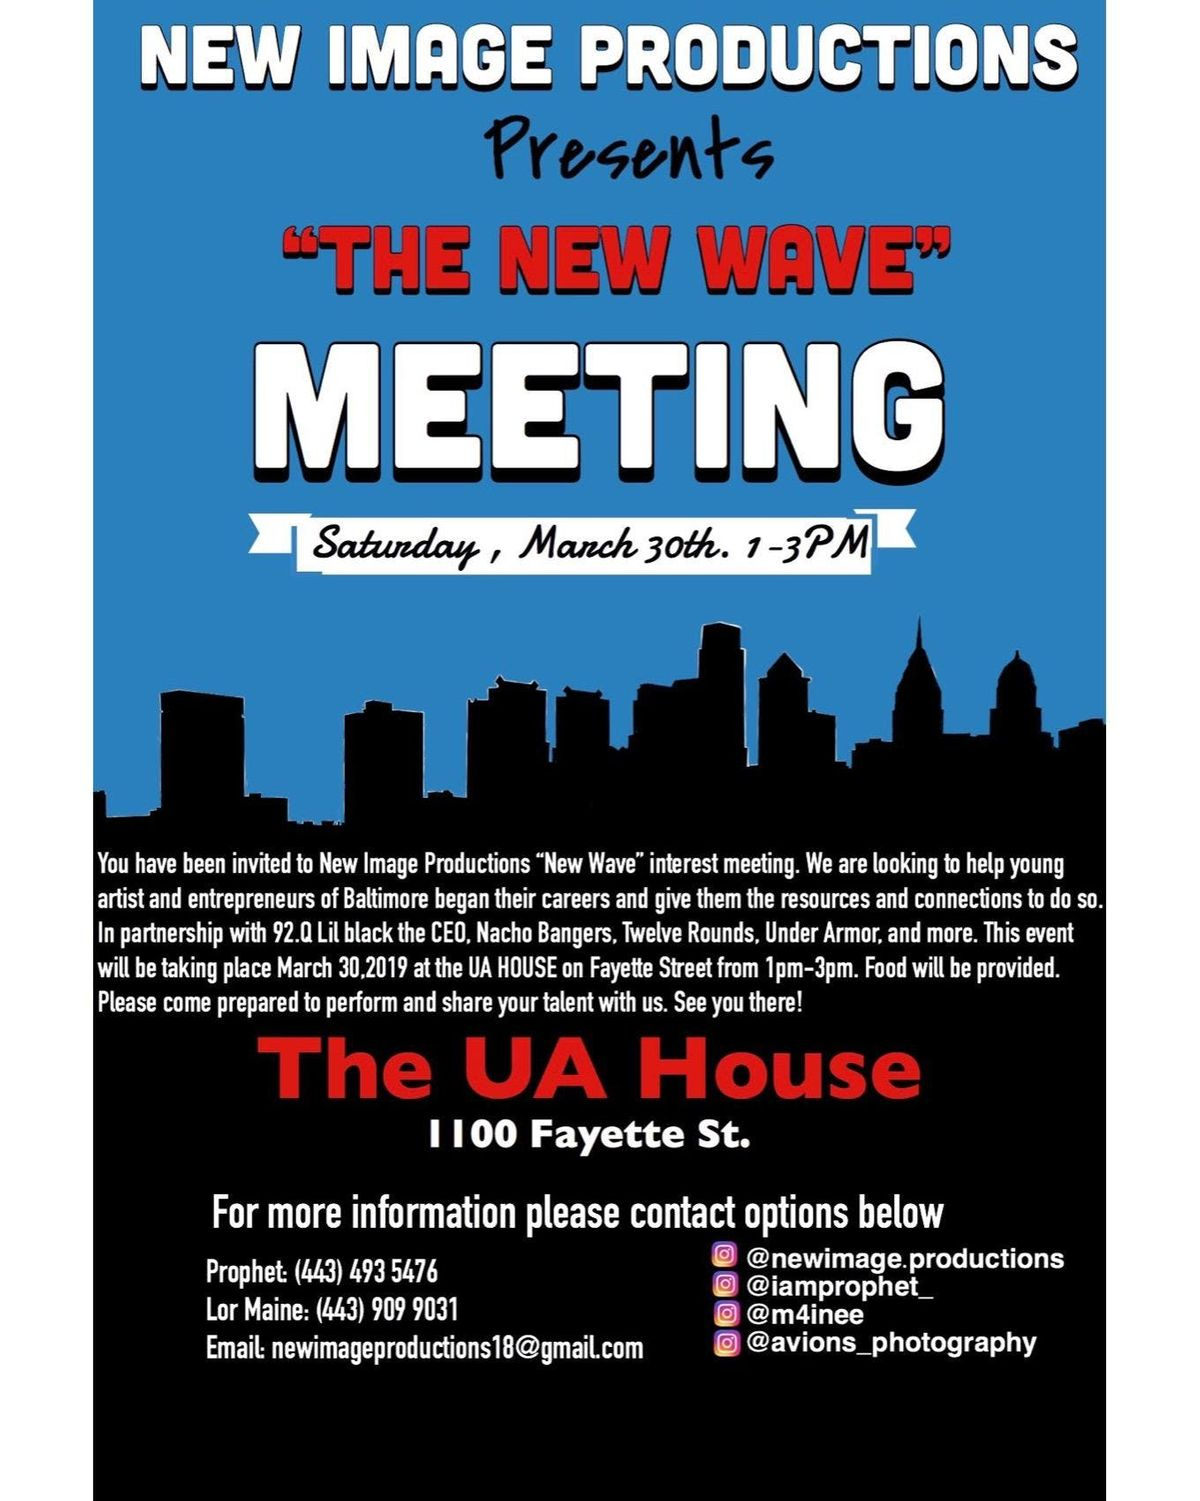 New Image Productions Interest Meeting